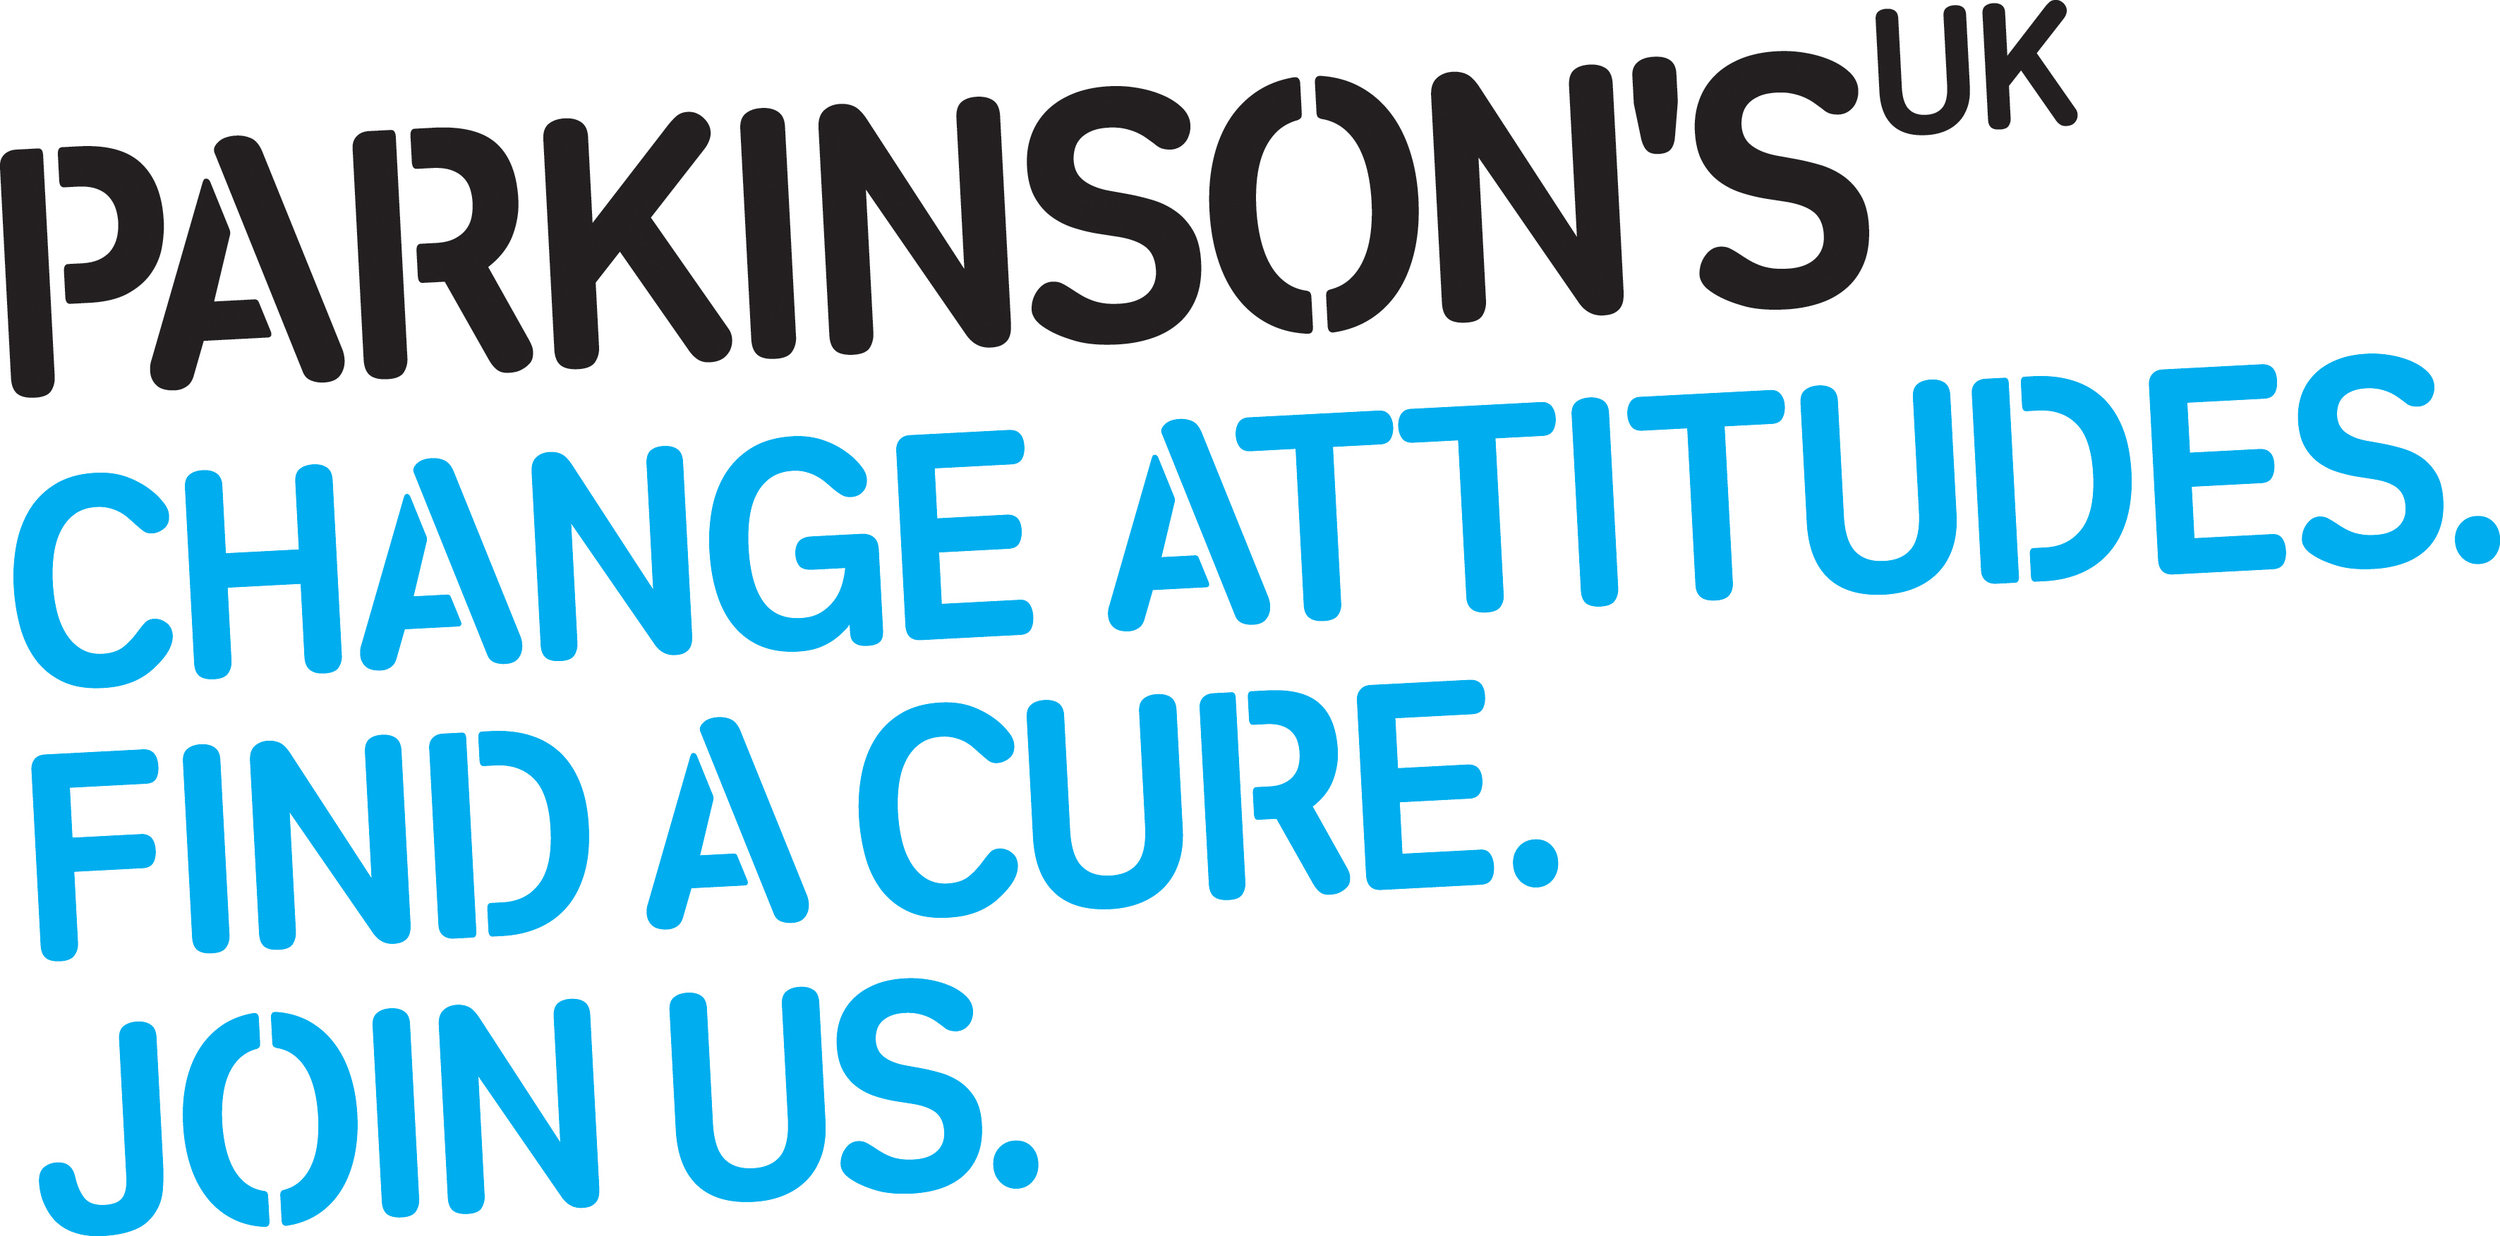 parkinsonsuk_logostacked_4cpdownload.jpg